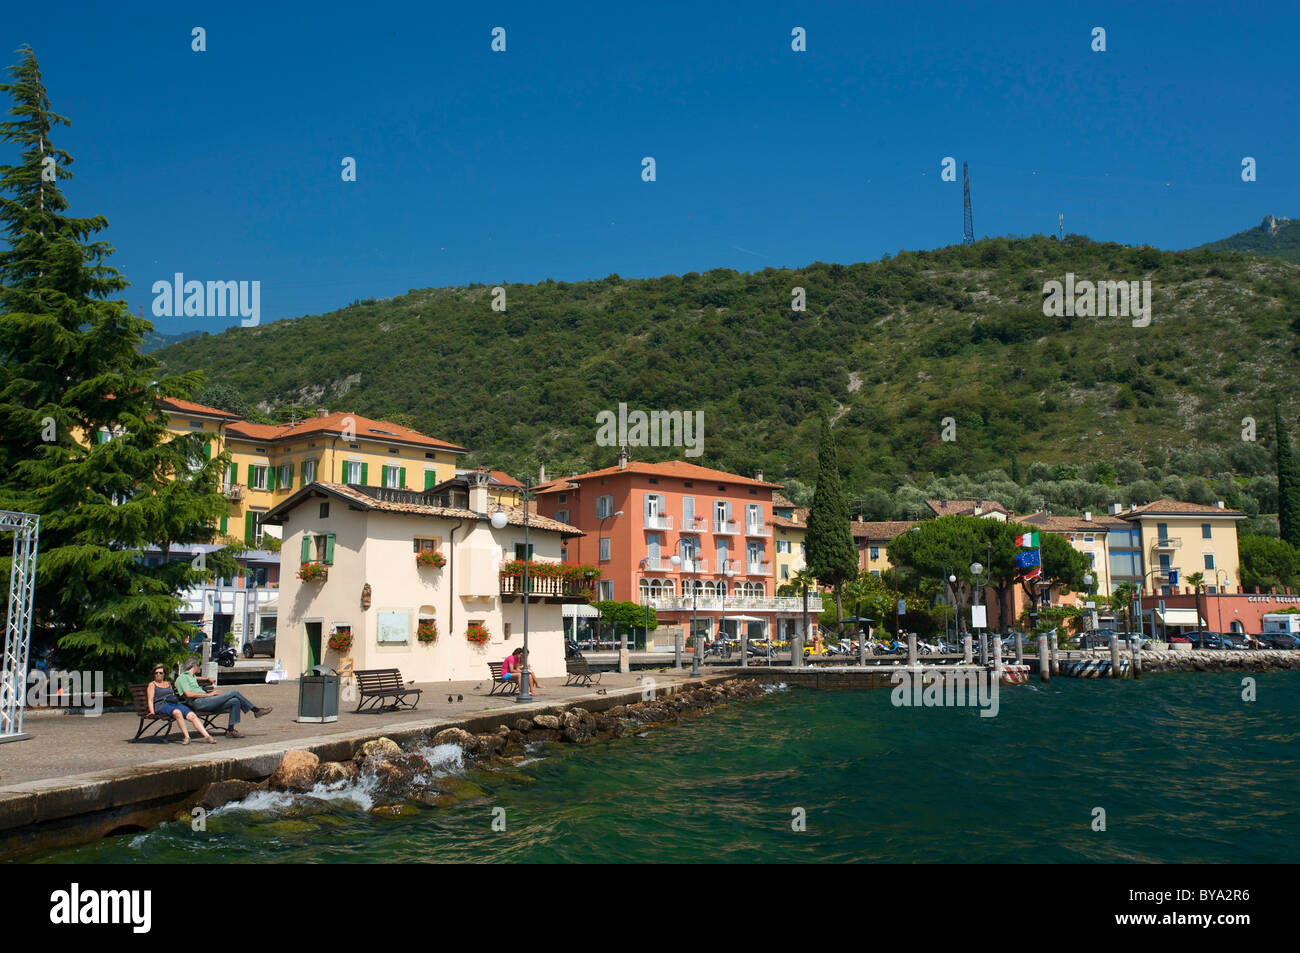 Lakeside promenade in Torbole on Lake Garda, province of Trento, Trentino, Italy, Europe Stock Photo